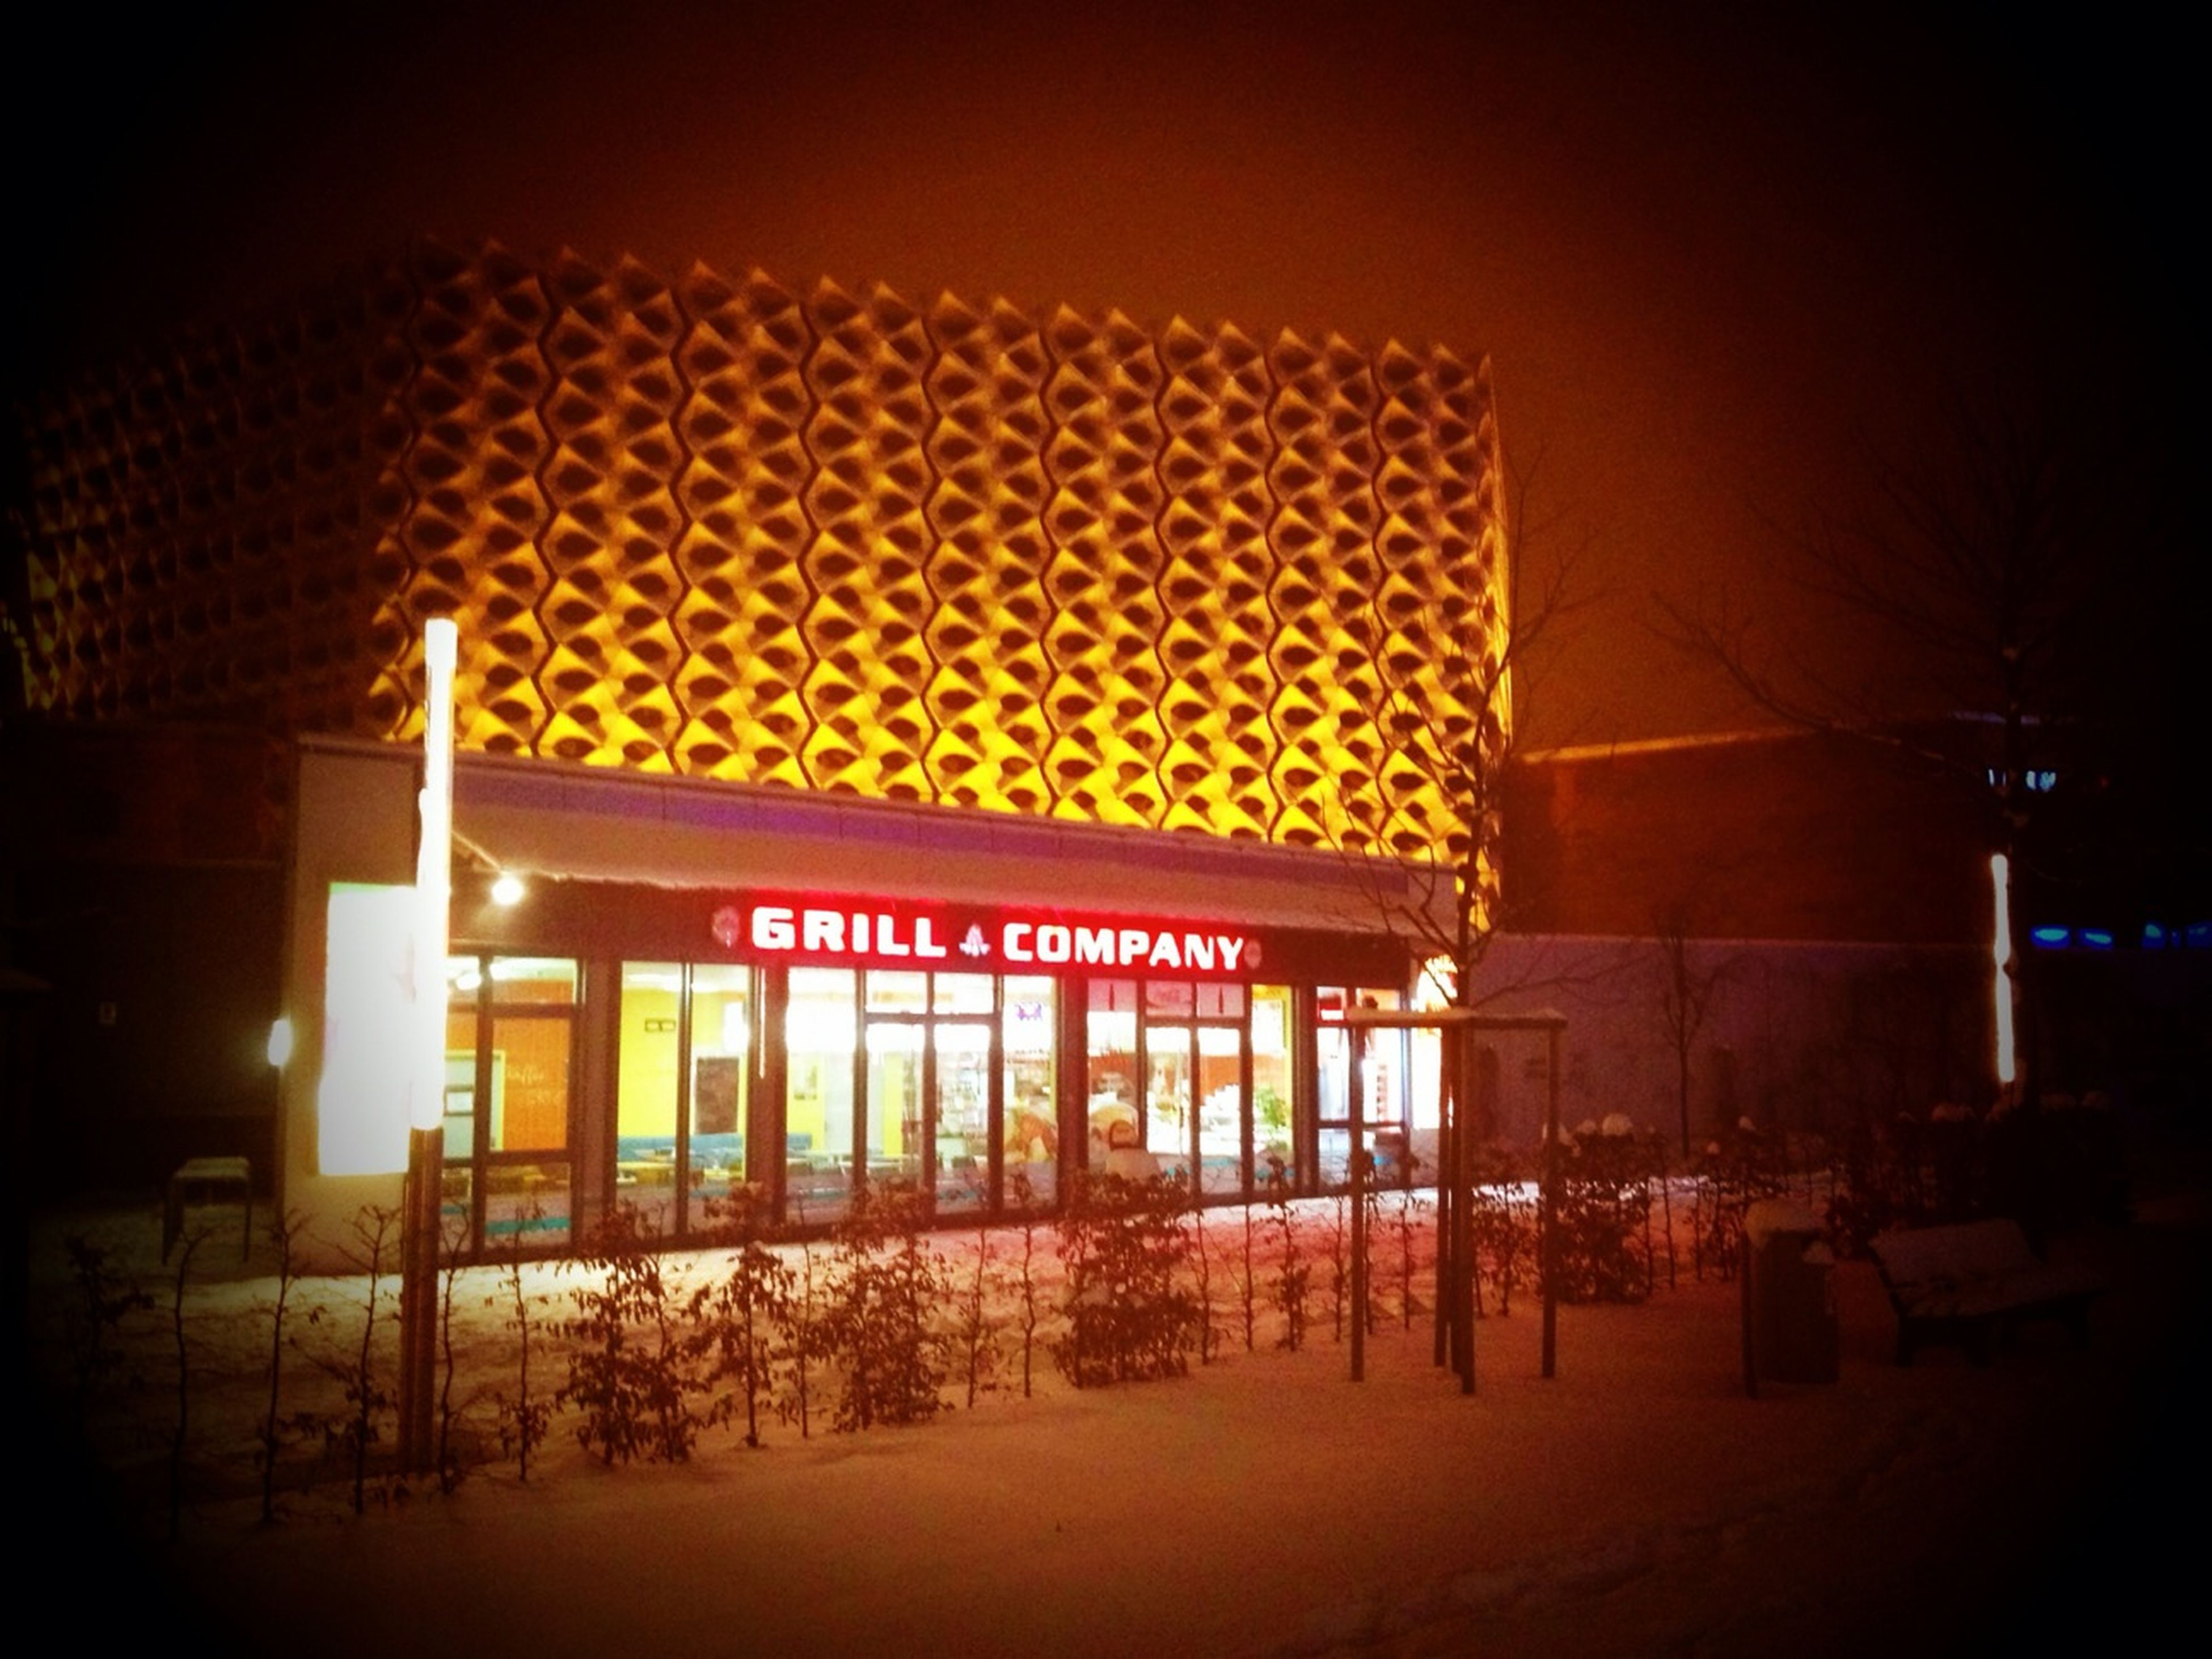 illuminated, architecture, built structure, building exterior, night, text, chair, western script, lighting equipment, outdoors, absence, store, no people, restaurant, non-western script, city, empty, incidental people, retail, hanging